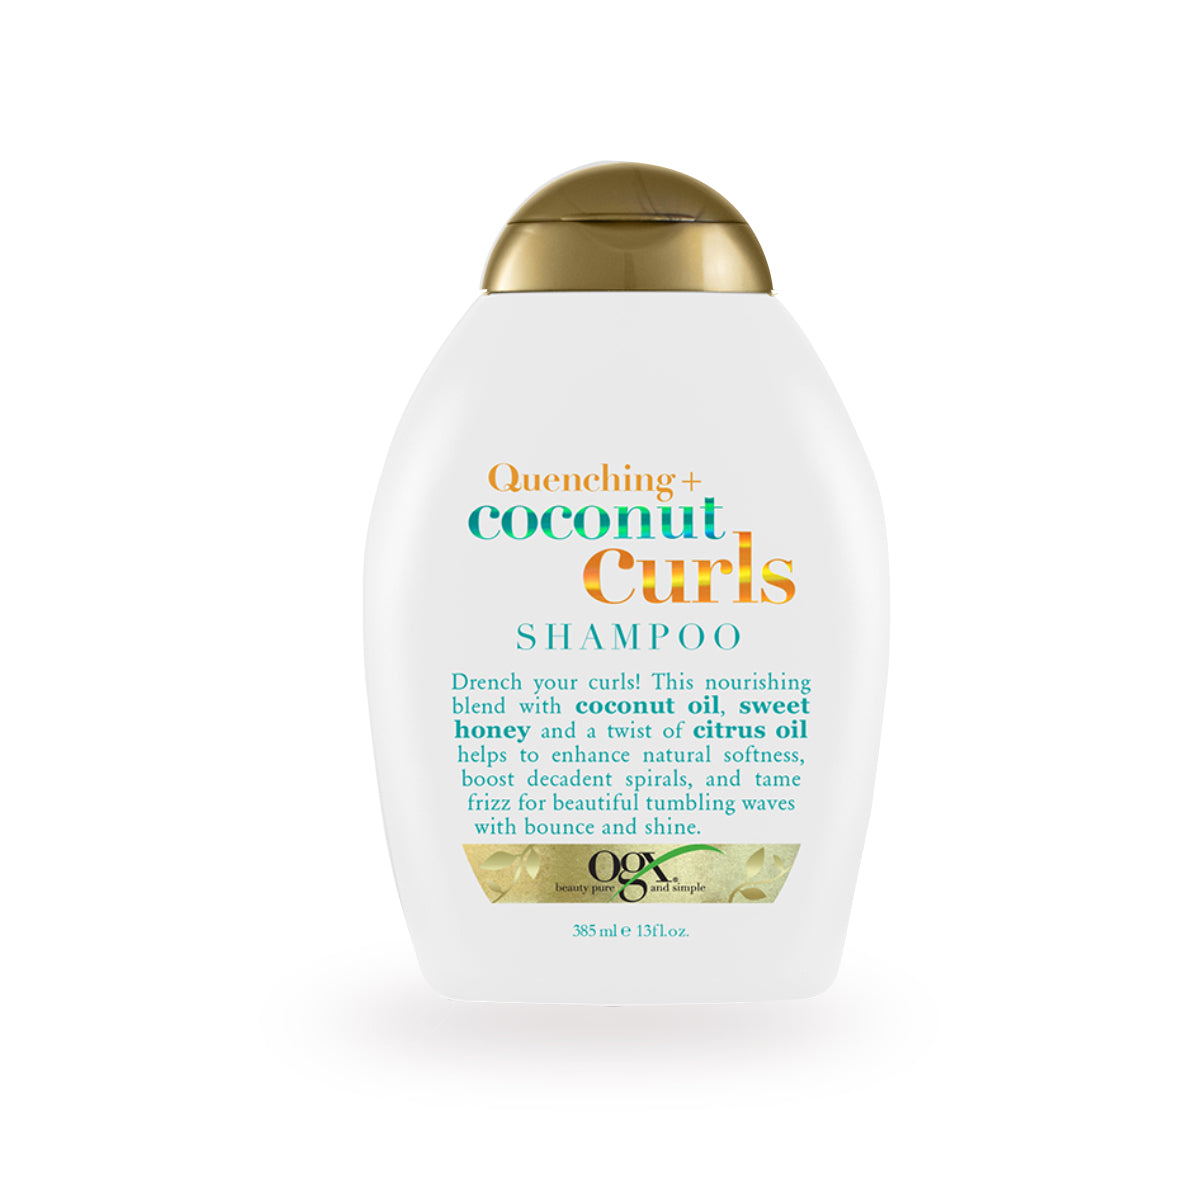 OGX Quenching COCONUT CURLS SHAMPOO